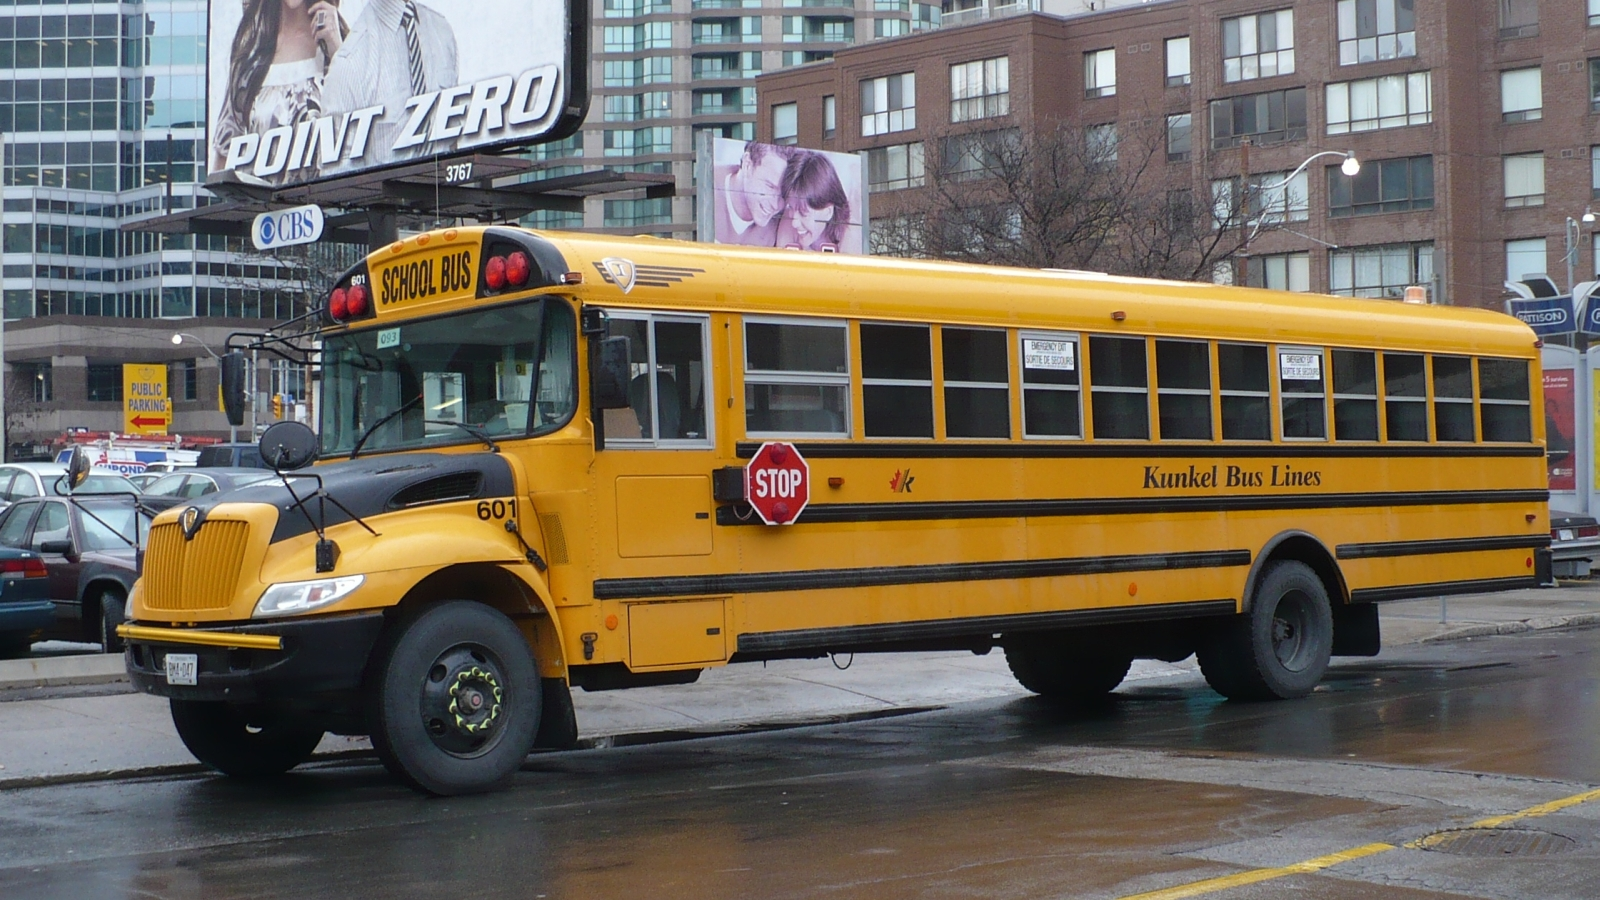 English: Kunkel Bus Lines yellow school bus